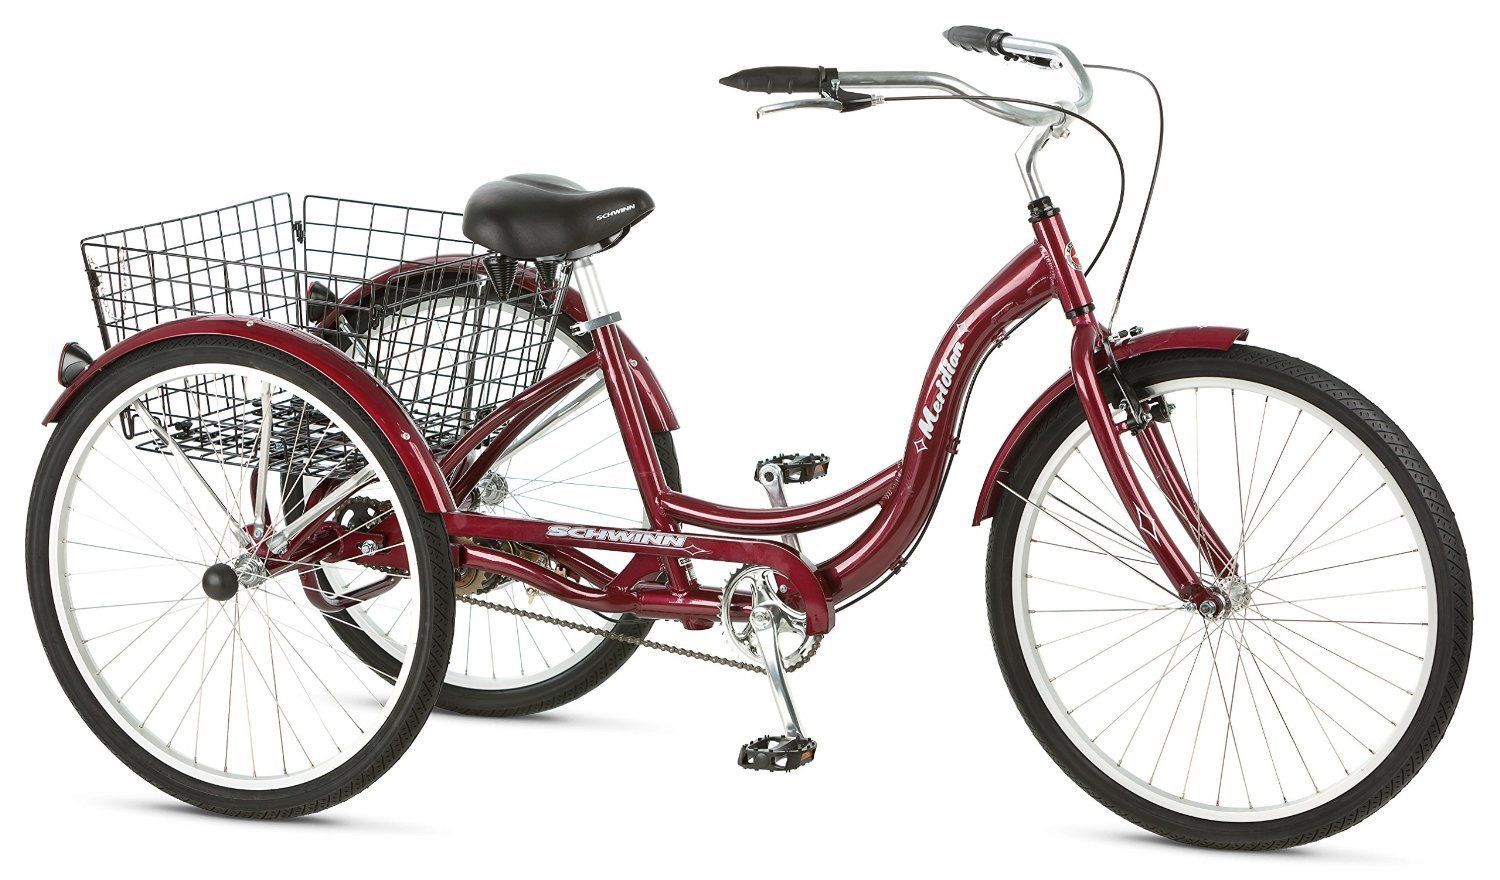 Adult Tricycle For Bike Schwinn Meridian 3 Wheel 26 Inch With Basket Red Bicycle